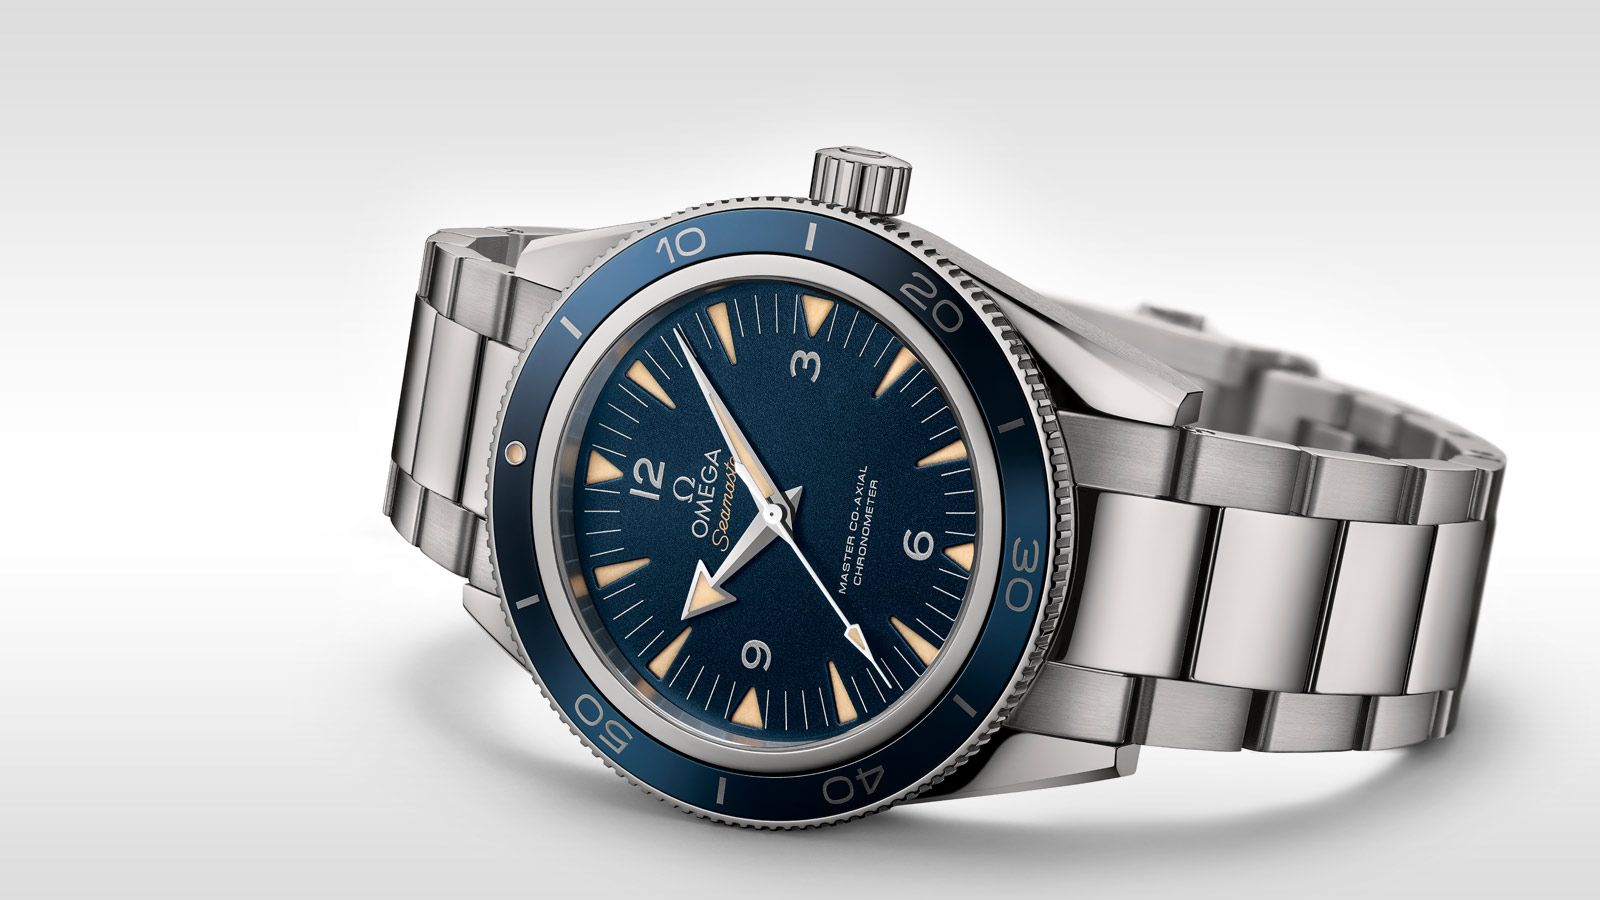 Seamaster Seamaster 300 Seamaster 300 Omega Master Co‑Axial 41 mm - 233.90.41.21.03.001 - View 1